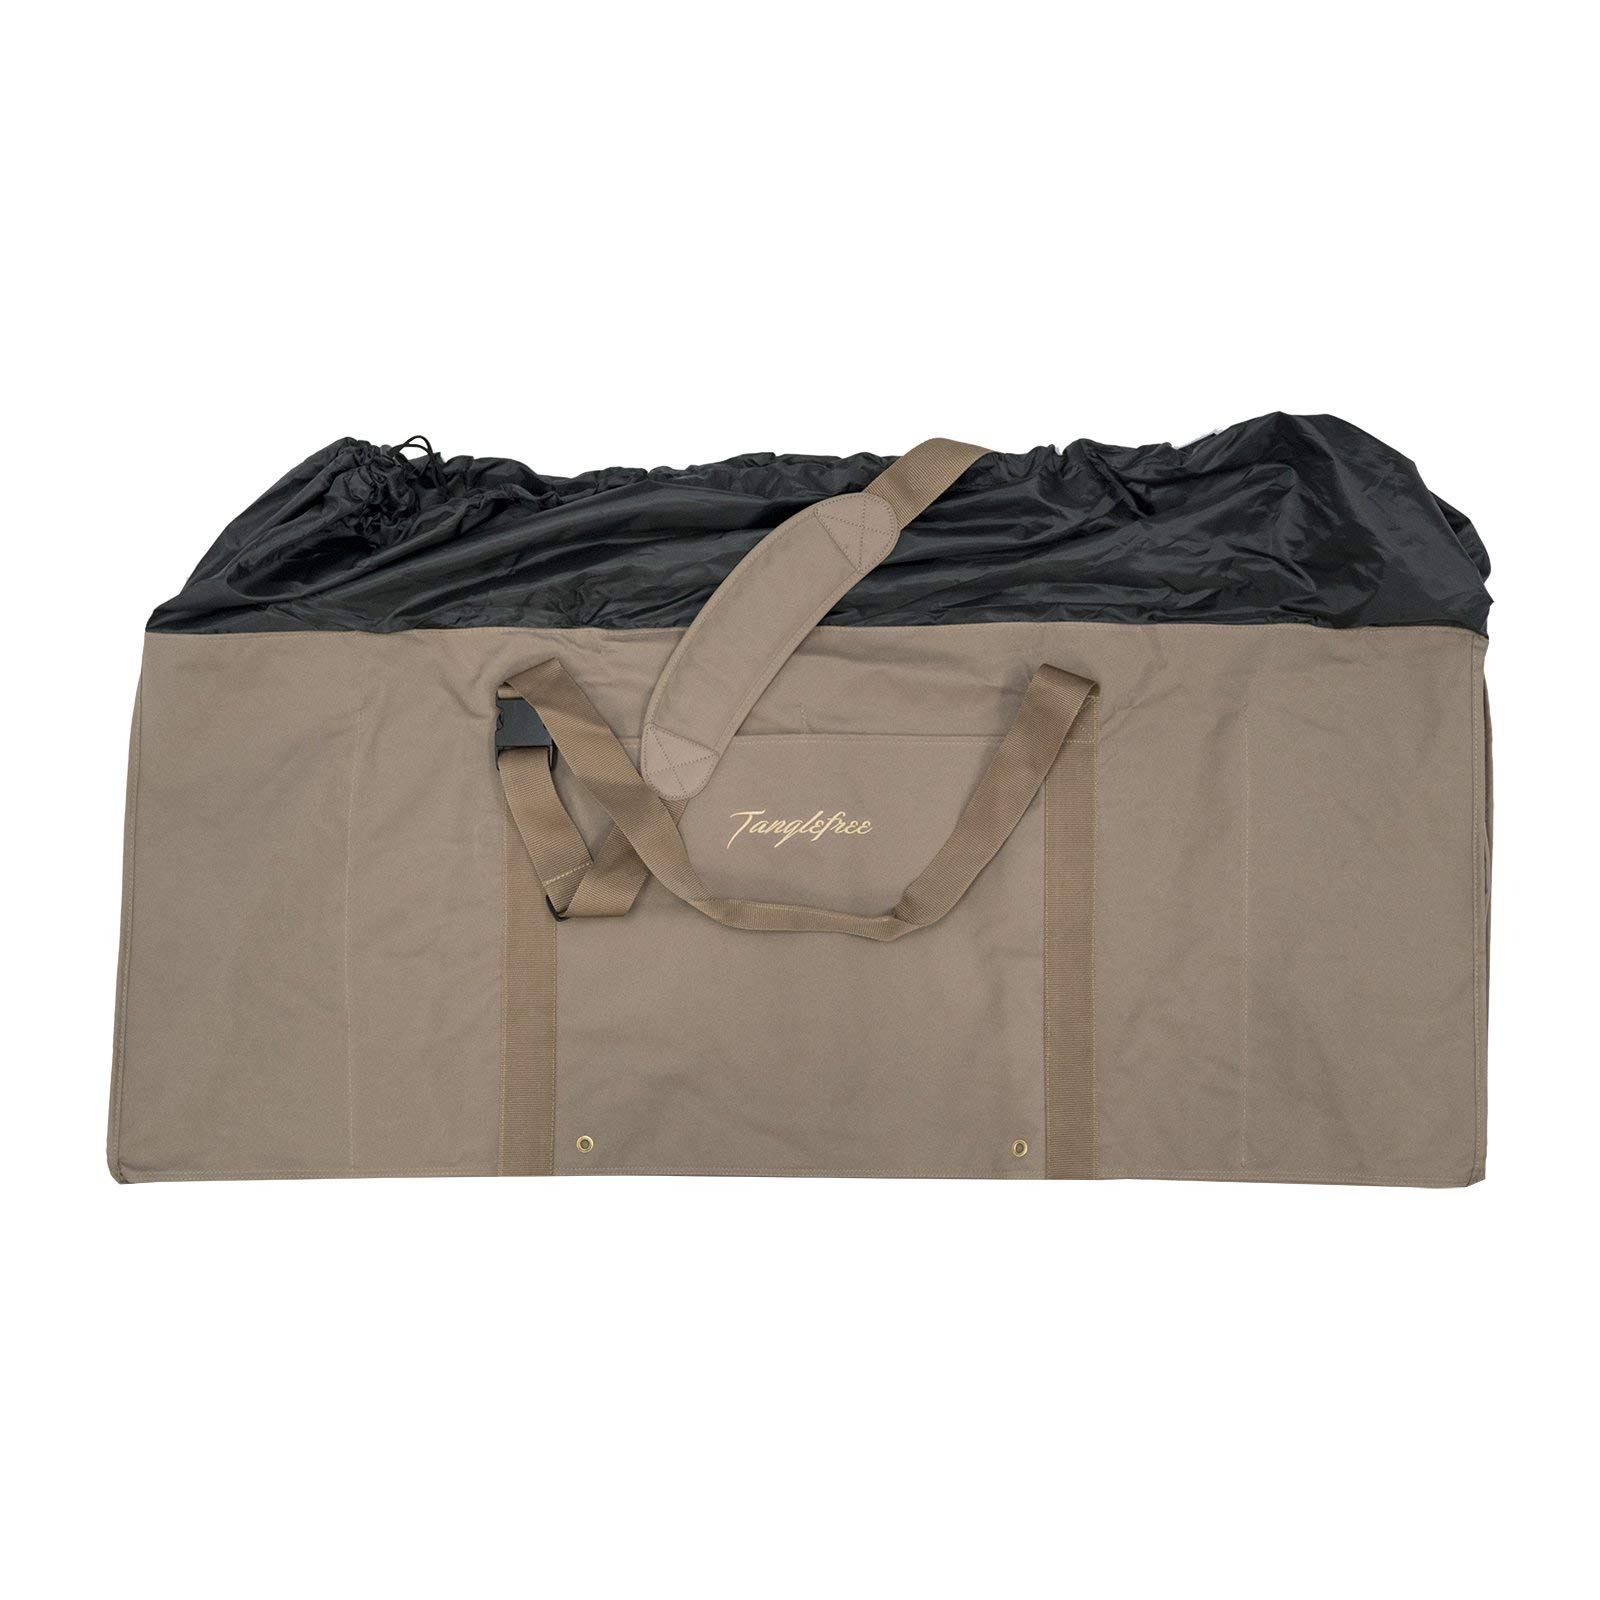 Tanglefree 12 Slot Mid-Size Goose Decoy Bag 50'' Long, 17.5'' Wide, 20.5'' Deep with 8'' x 8.5'' Pocket Size by Tanglefree (Image #1)